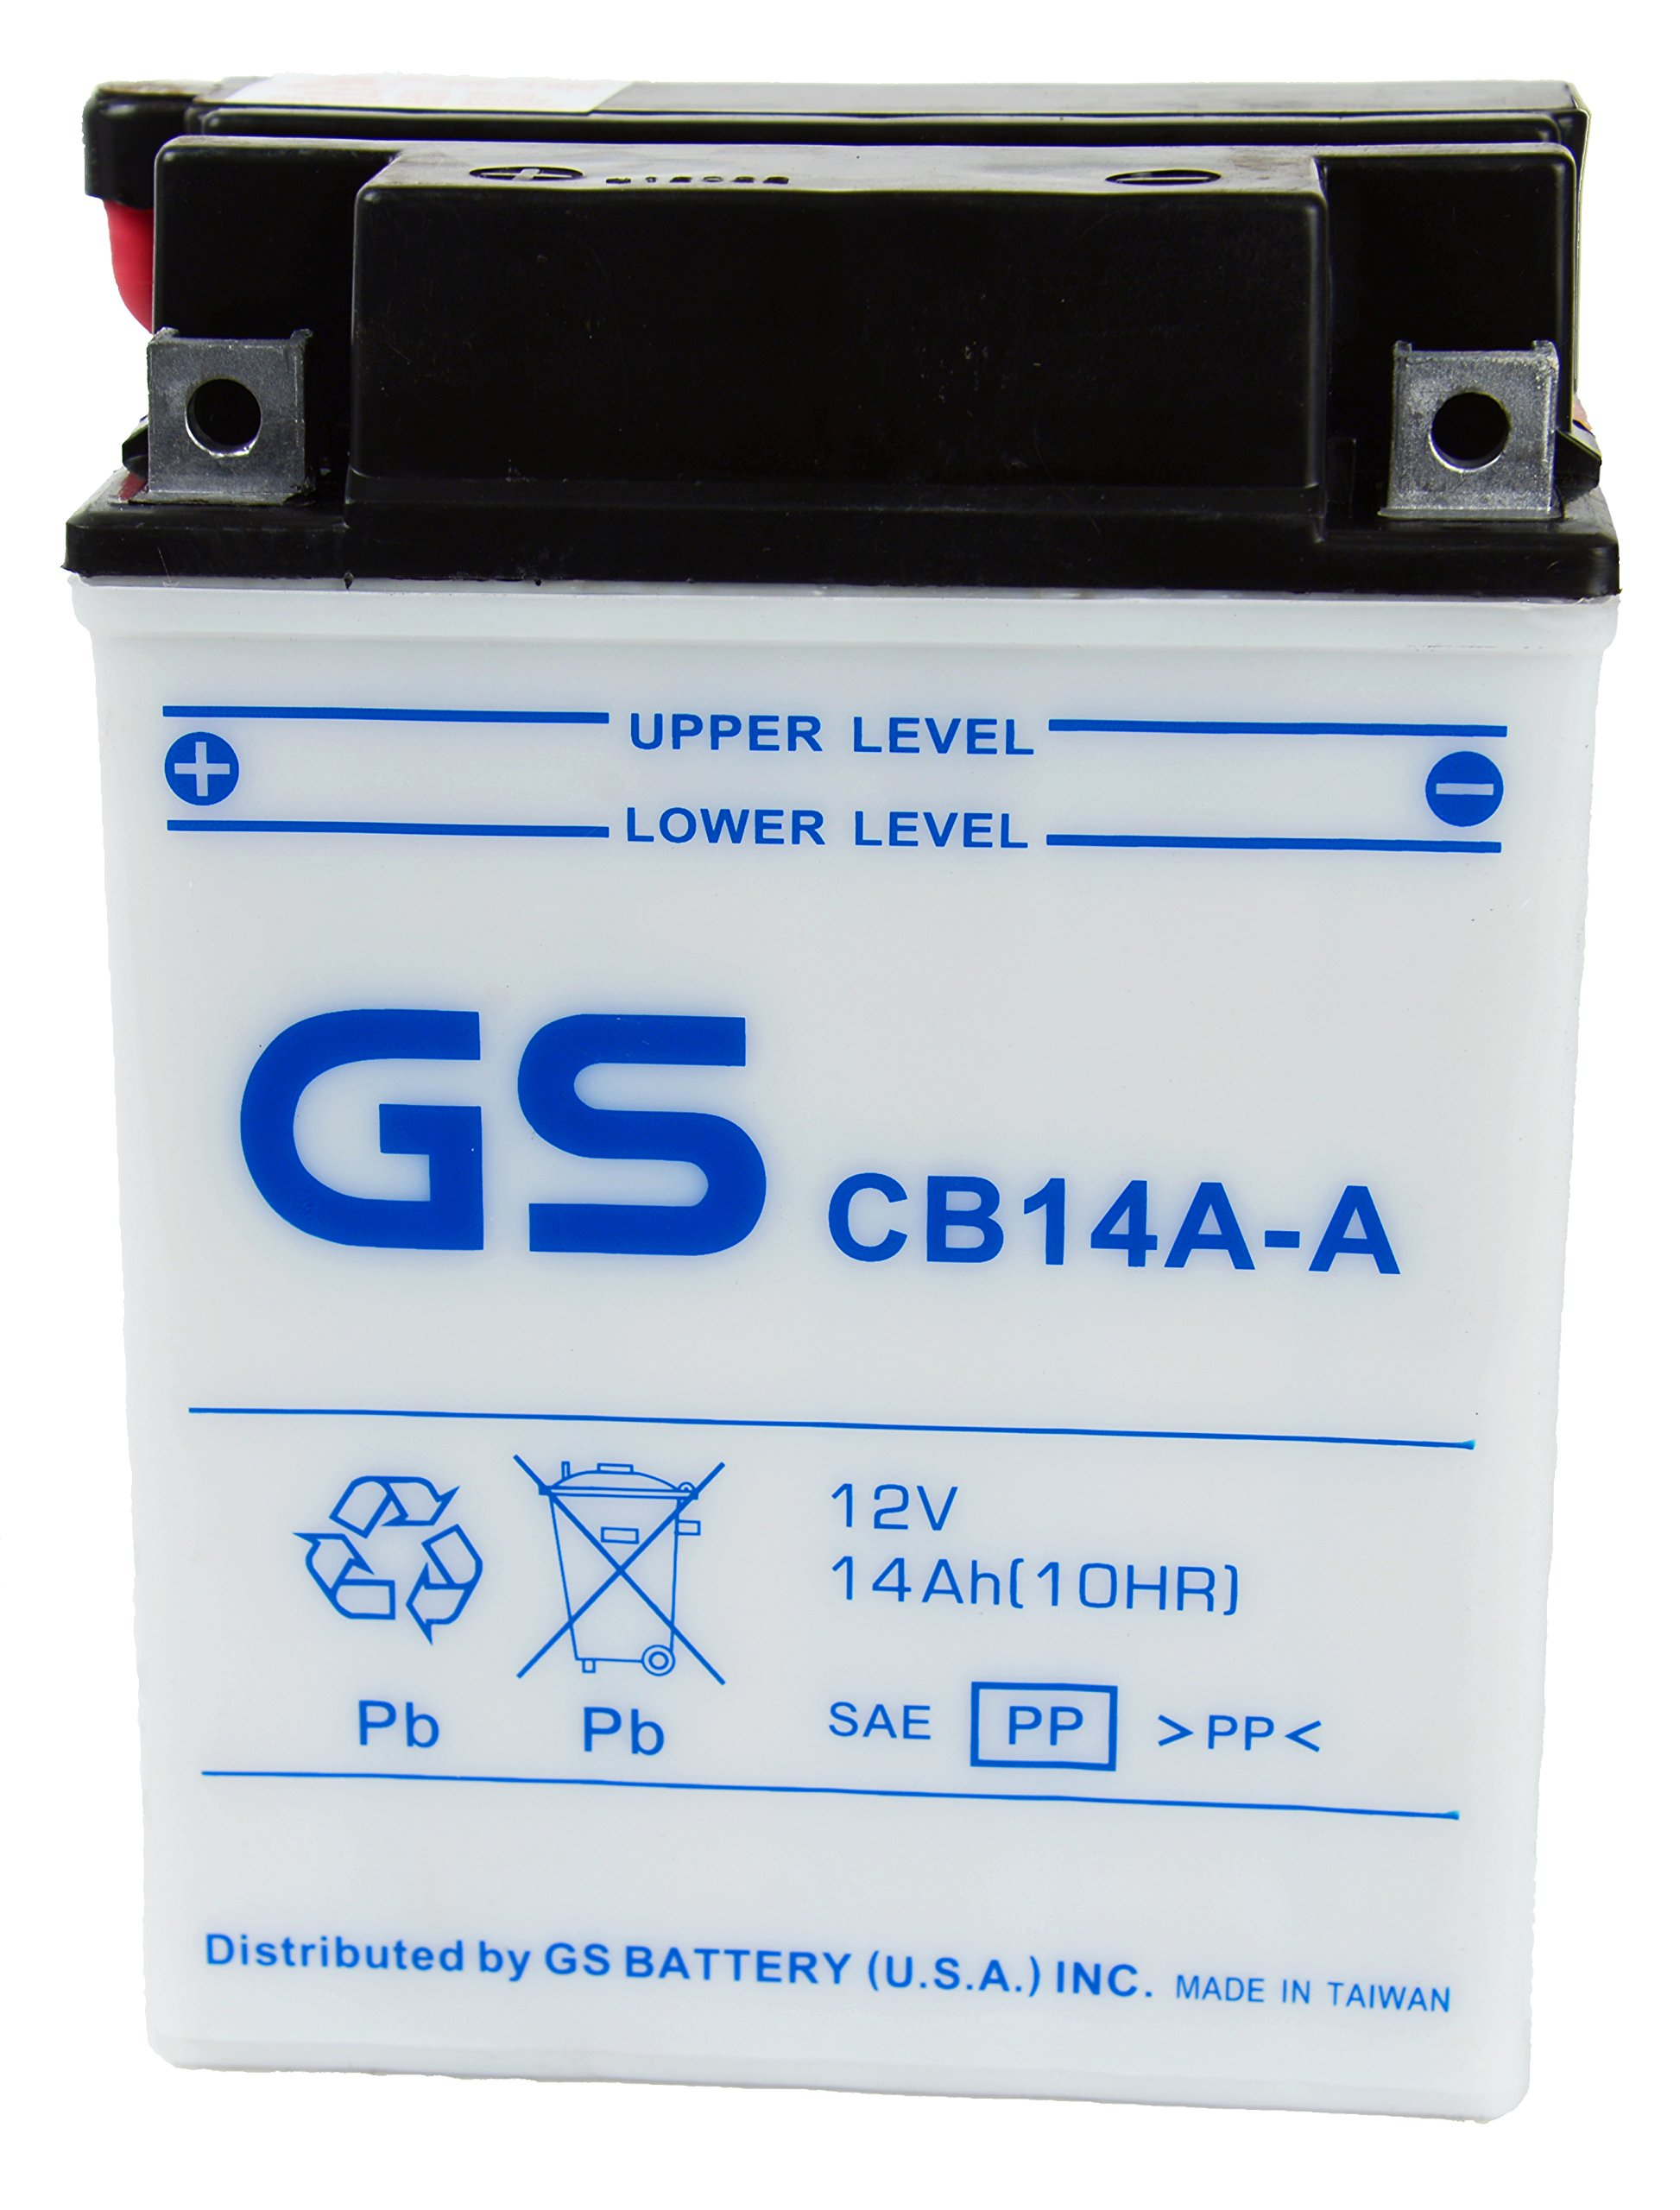 GS BATTERY - GS CB14AA with Acid Pack – High Performance Powersports Battery for YUASA YB14A-A1 Replacement. Fits ATV applications